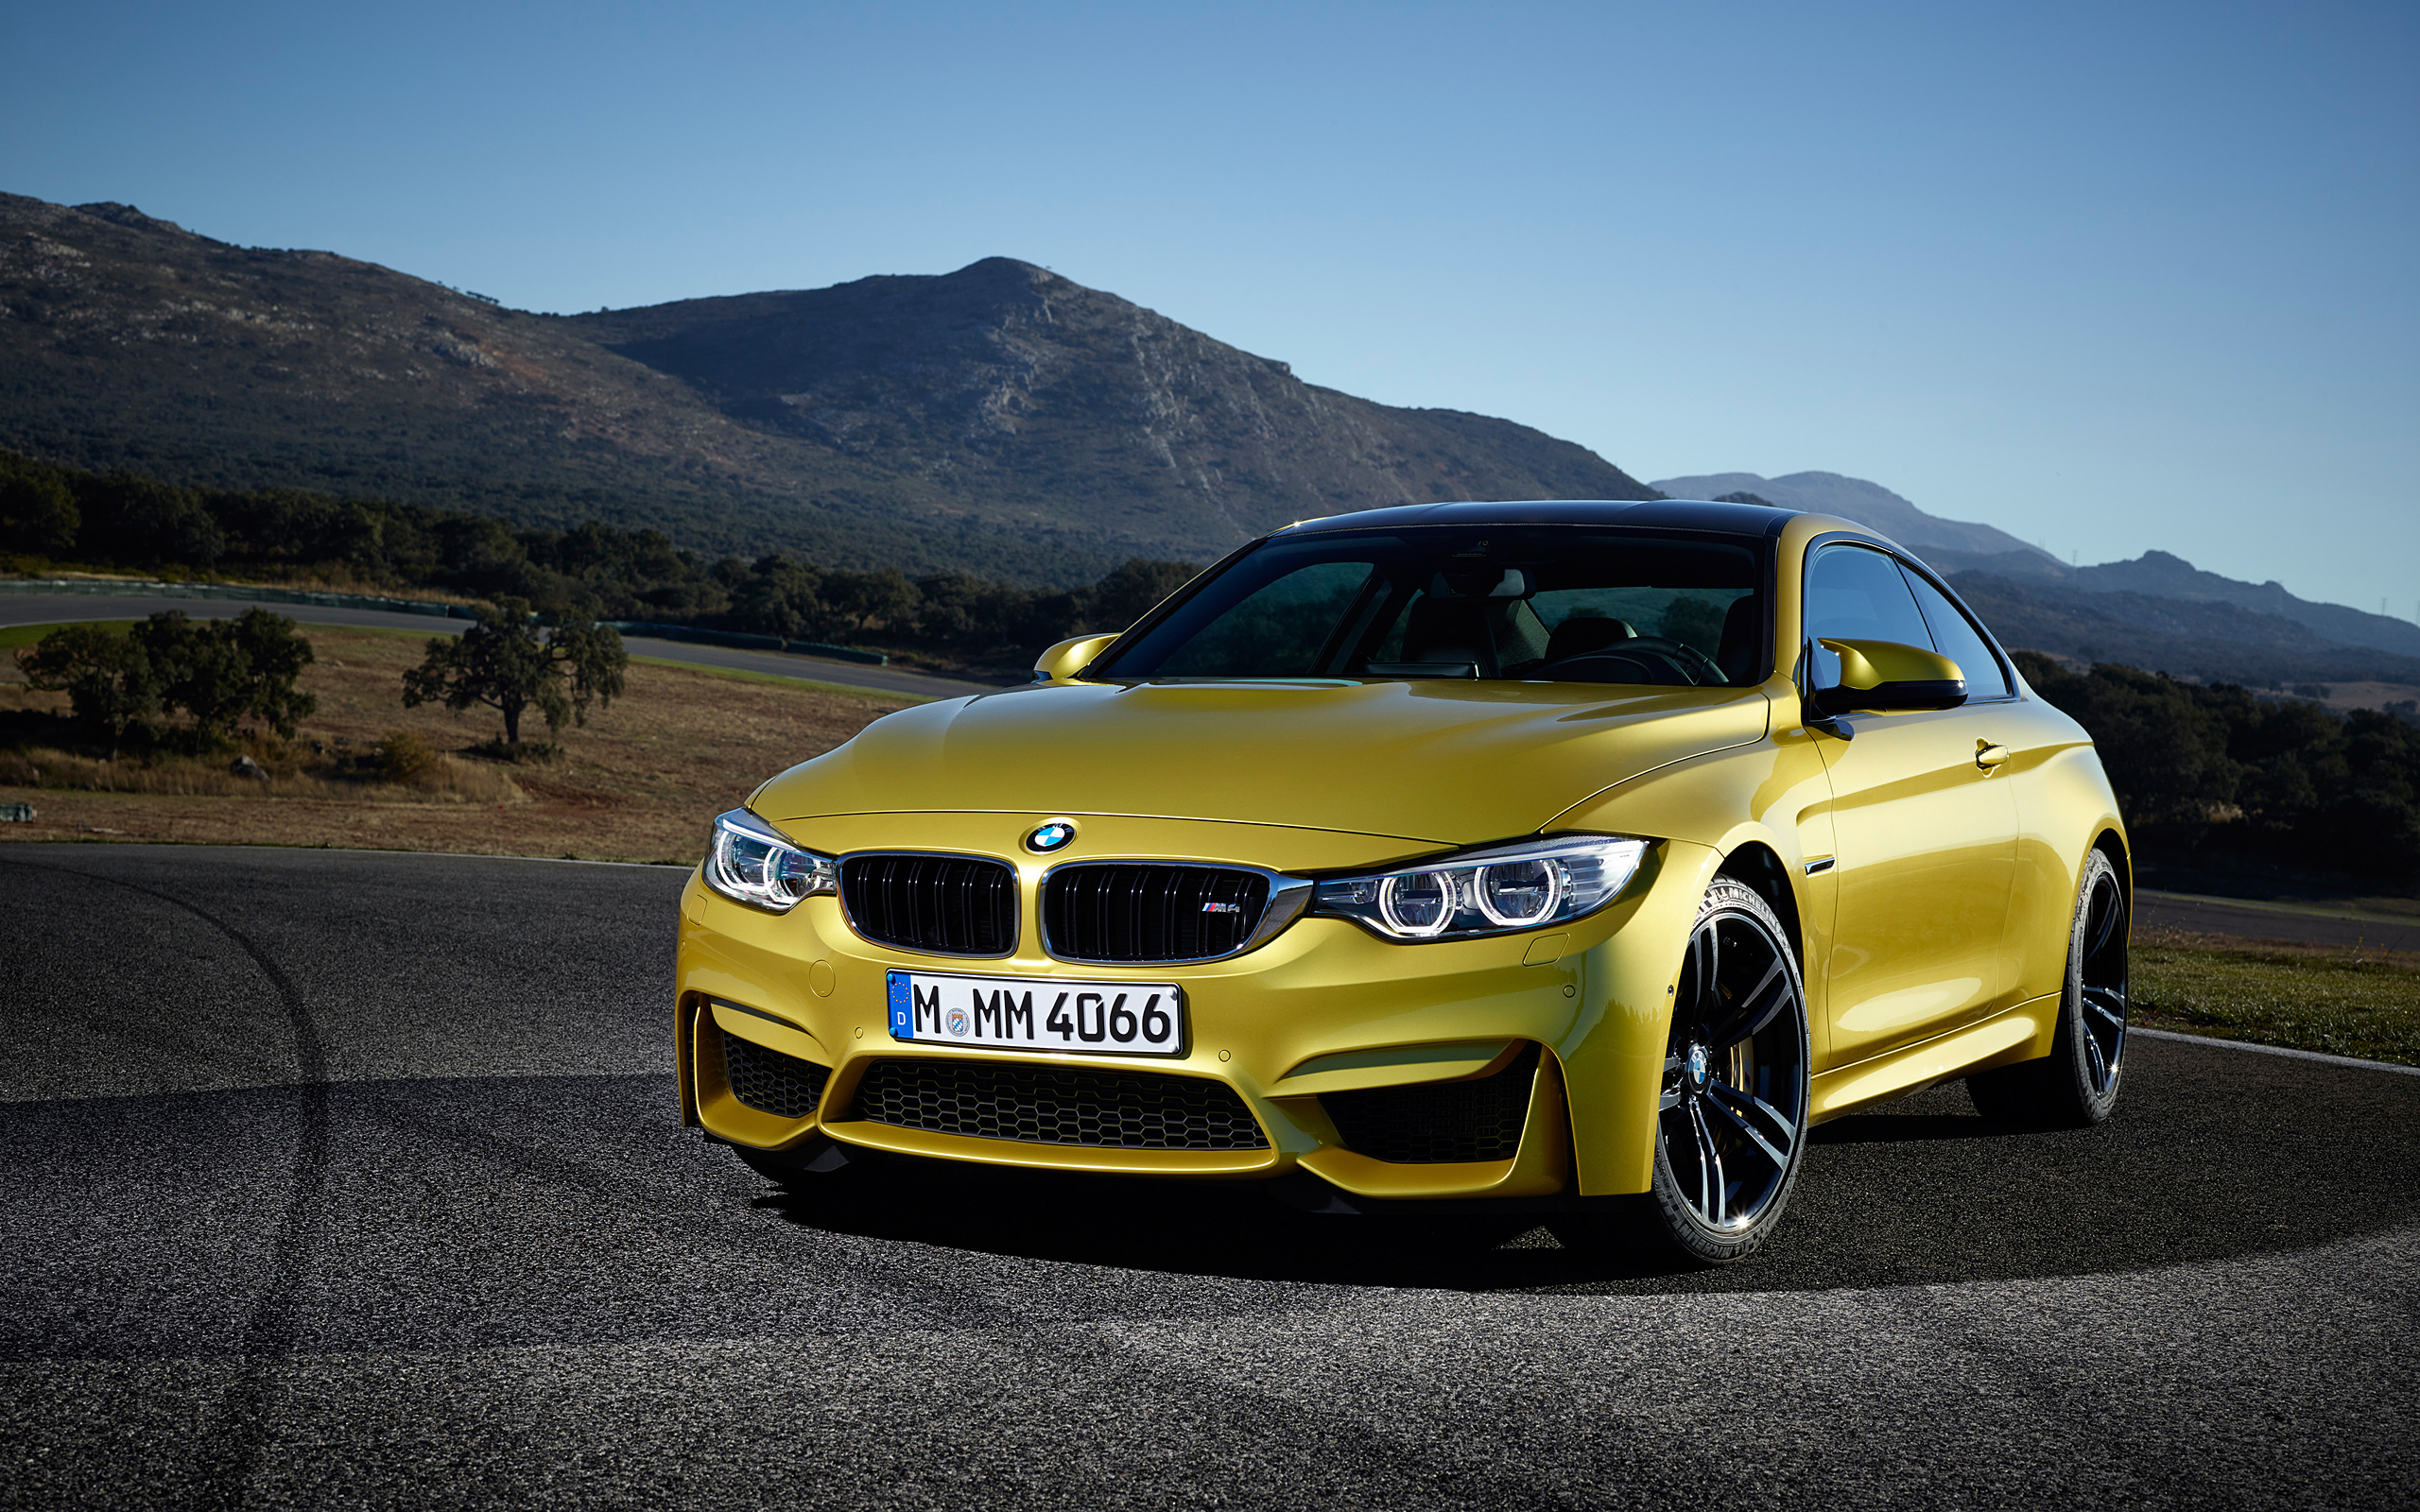 BMW M4 Wallpapers   HD Wallpapers Pulse yellow hd BMW M4 image